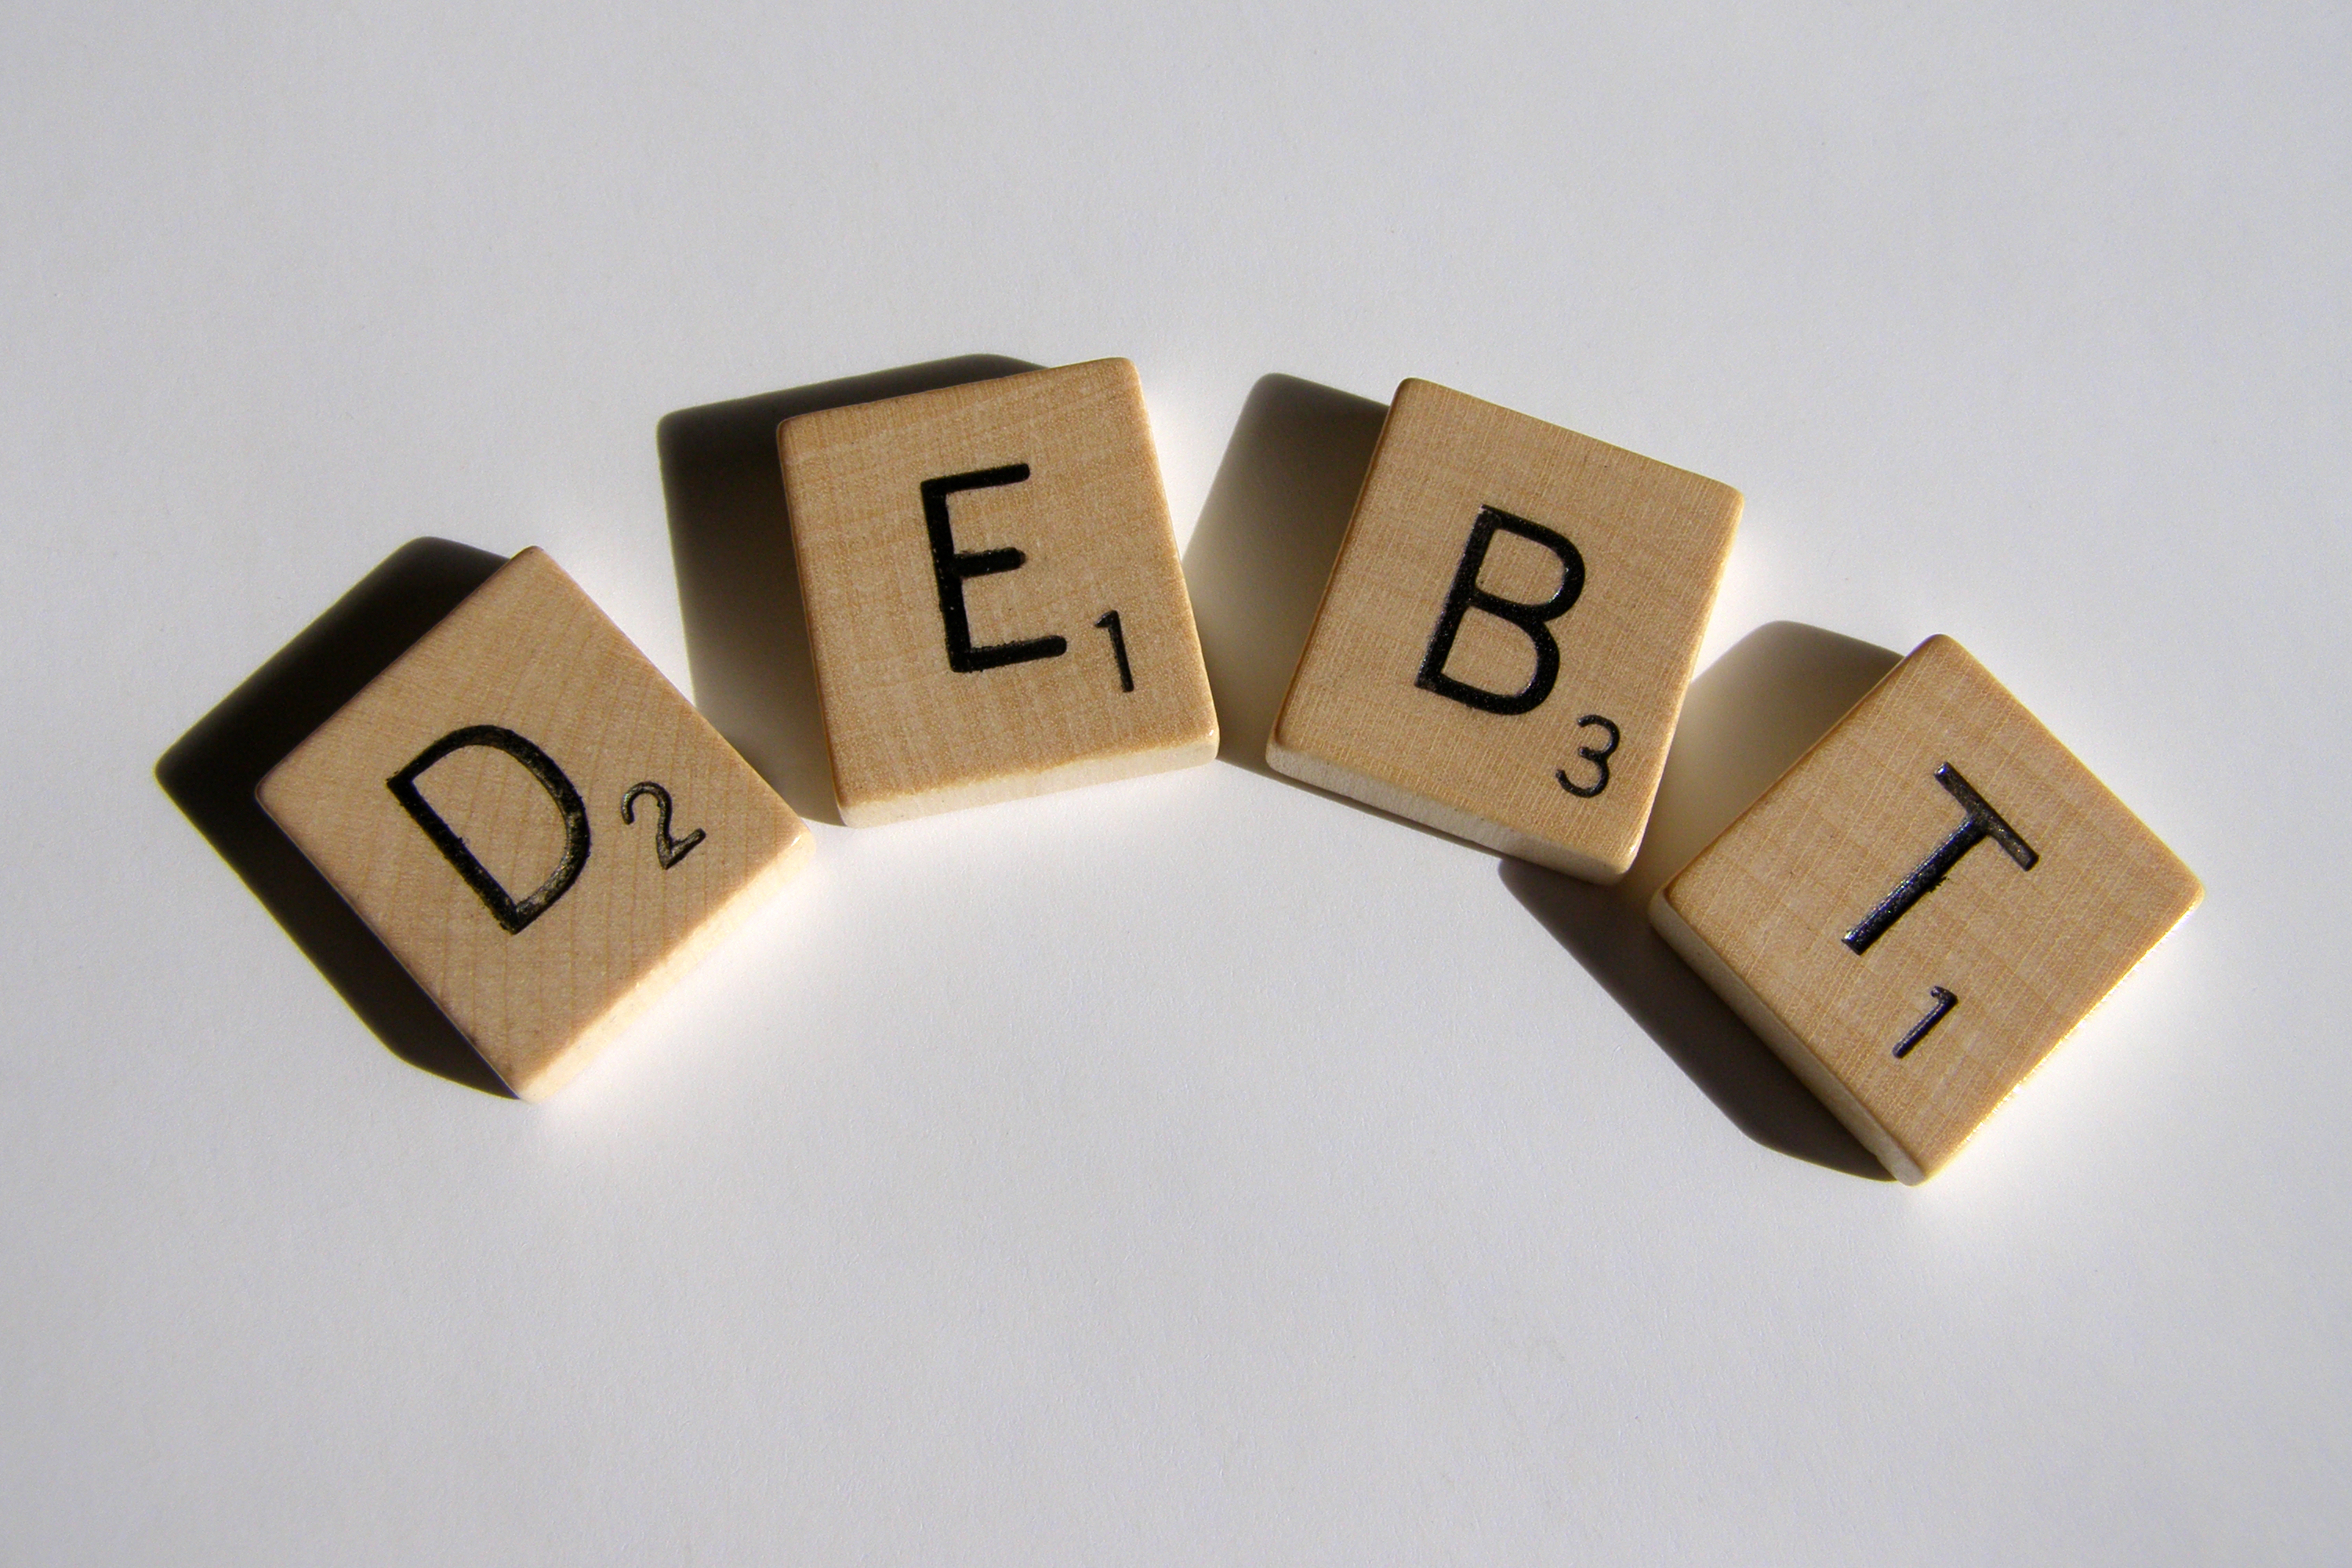 Want to get out of debt? Here's what NOT to do!